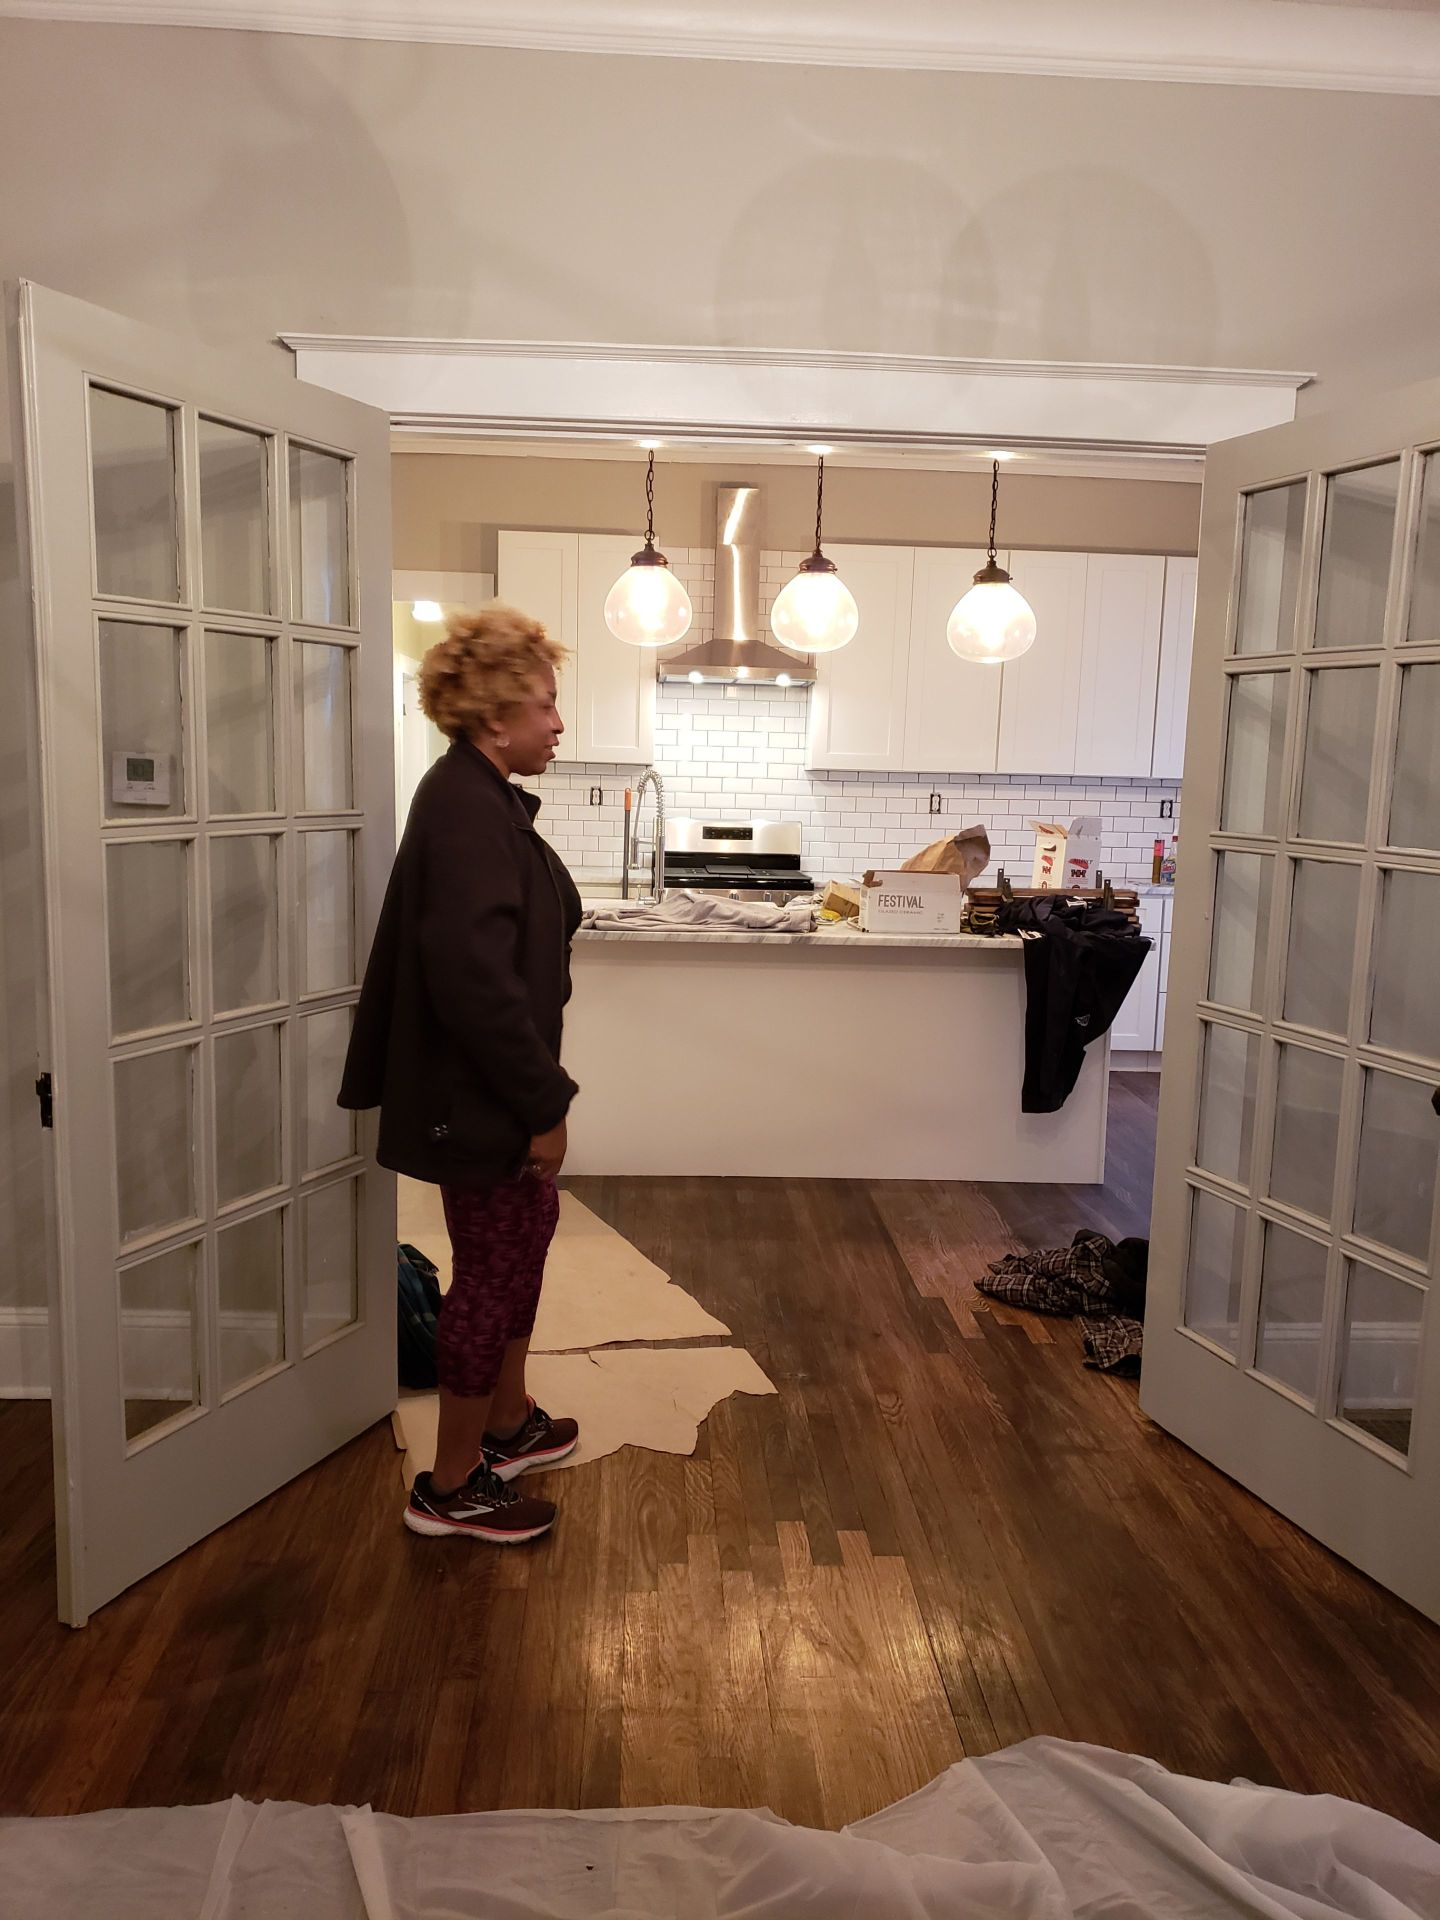 dm35-1440x1920 Tips For Renovating as a First Time Homebuyer from a Memphis Expert